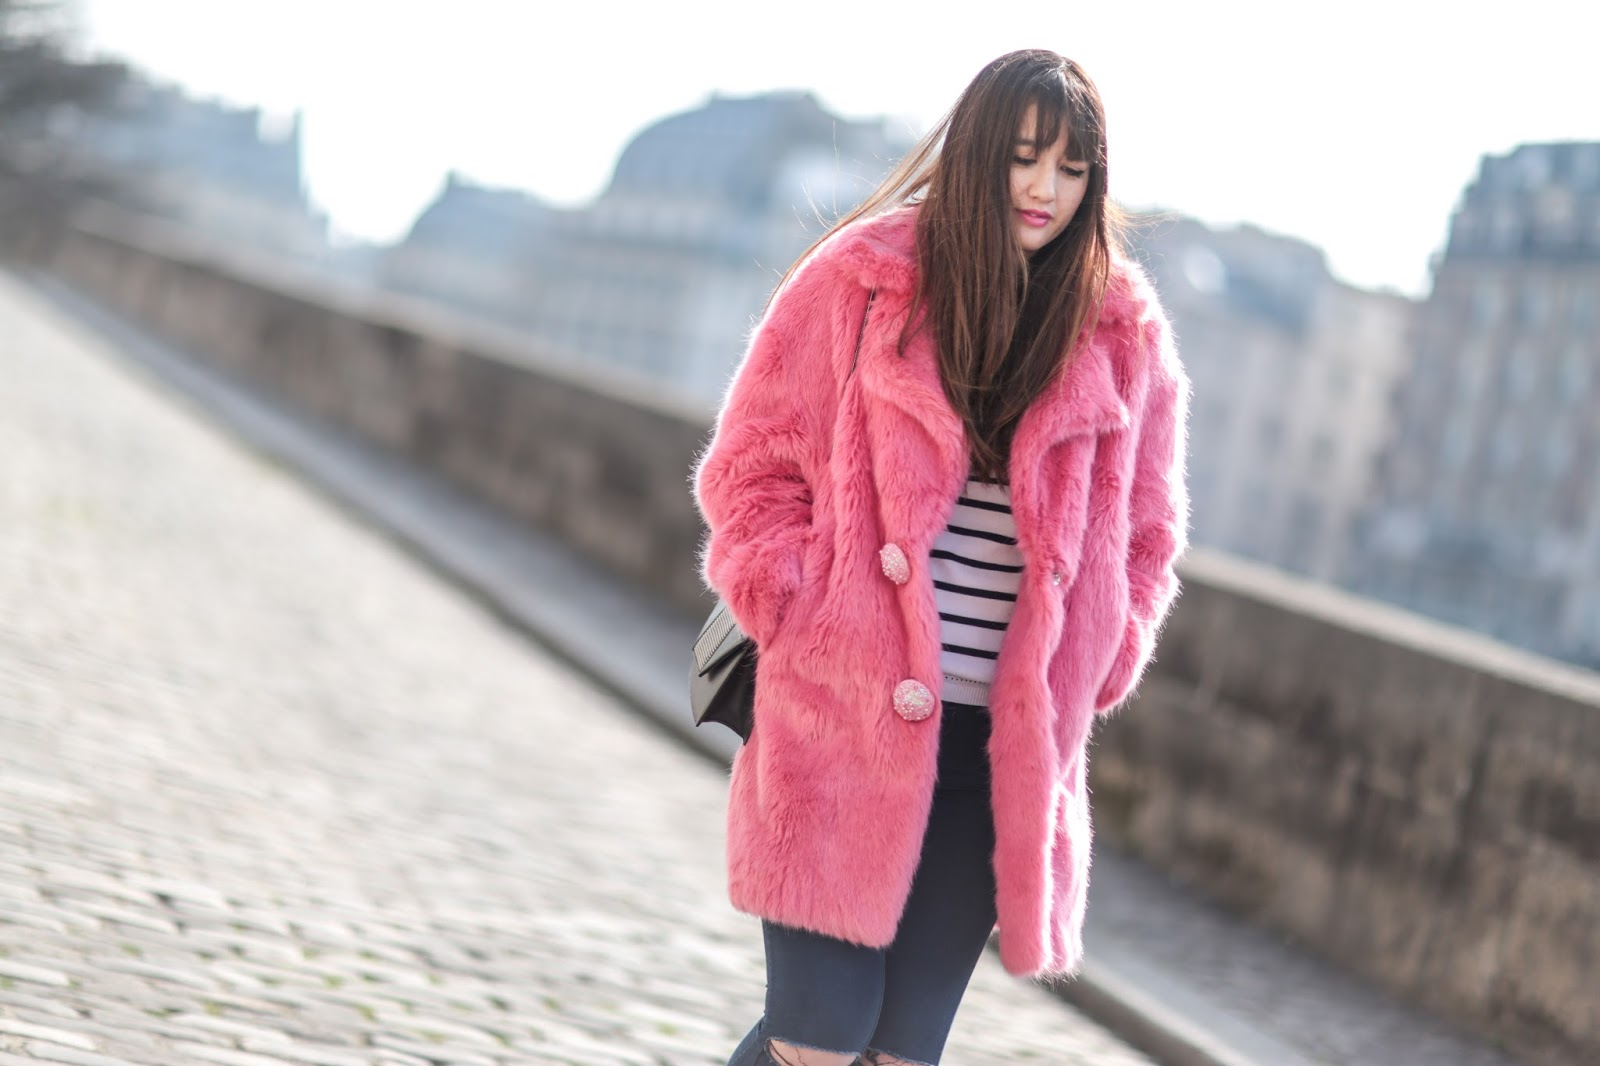 meet me in paree, blogger, fashion, look, style, parisian look, manoush, chic style